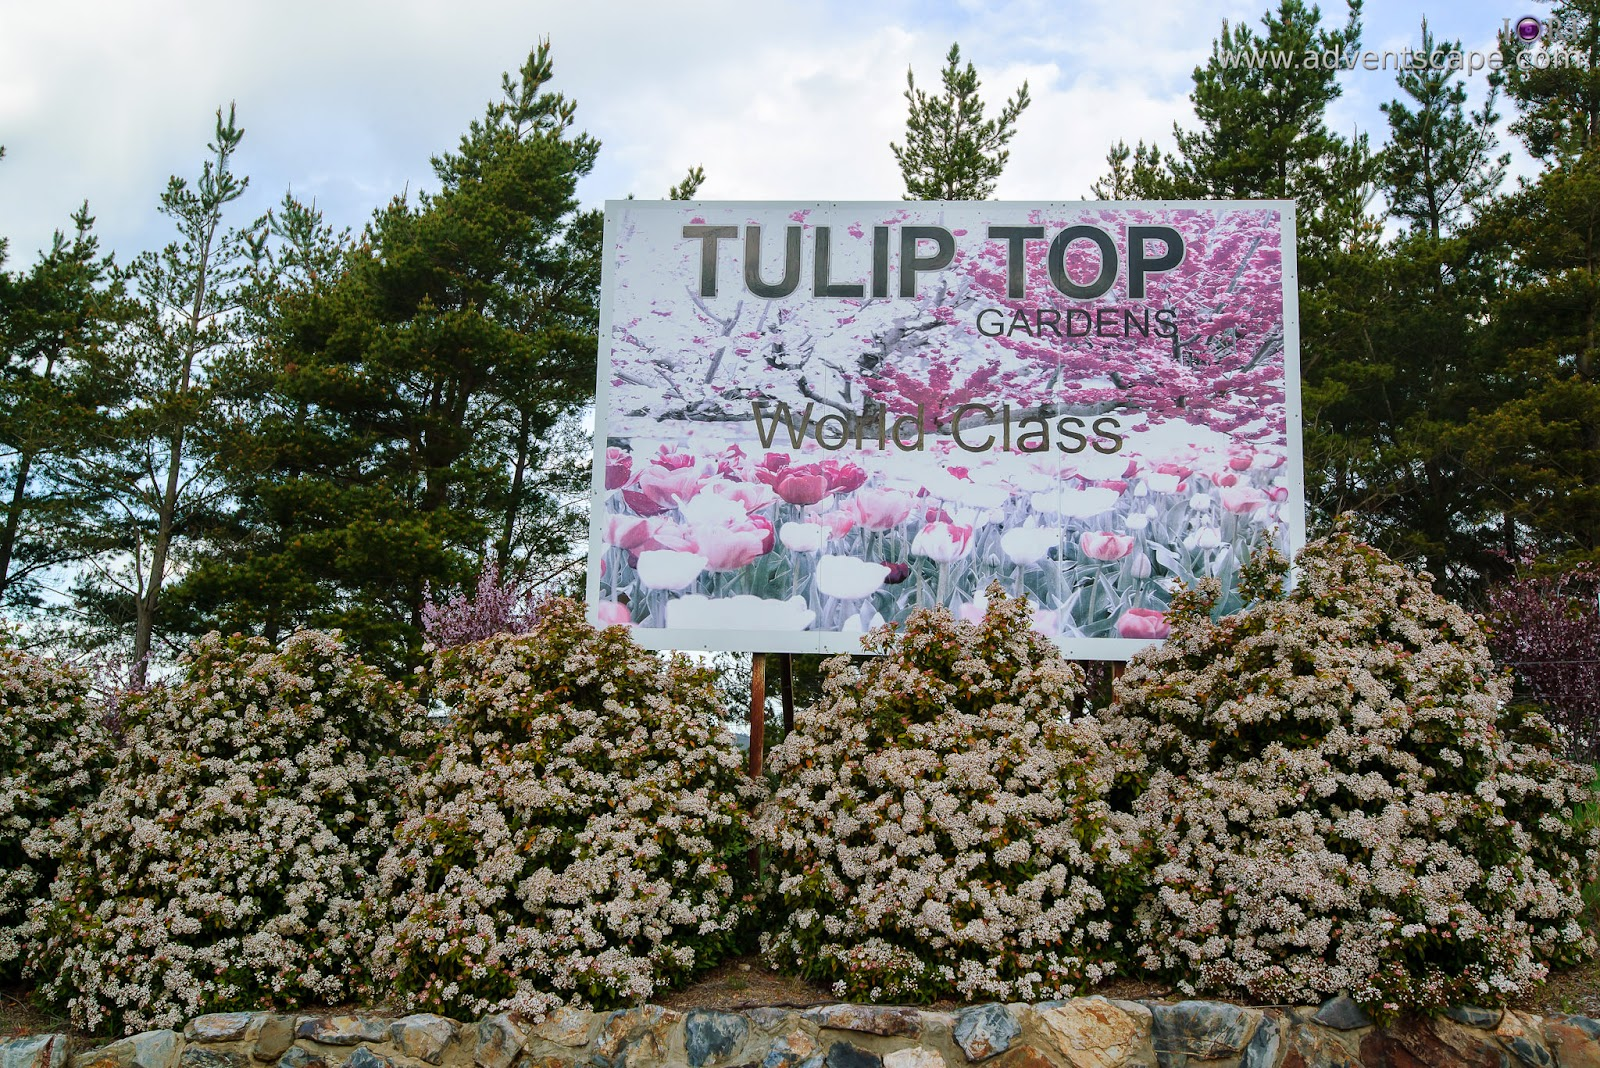 Philip Avellana, adventscape, iori, Tulip Top Gardens, garden, spring, NSW, New South Wales, Sutton, Old Federal Highway, Bywong, 2621, signage, sign